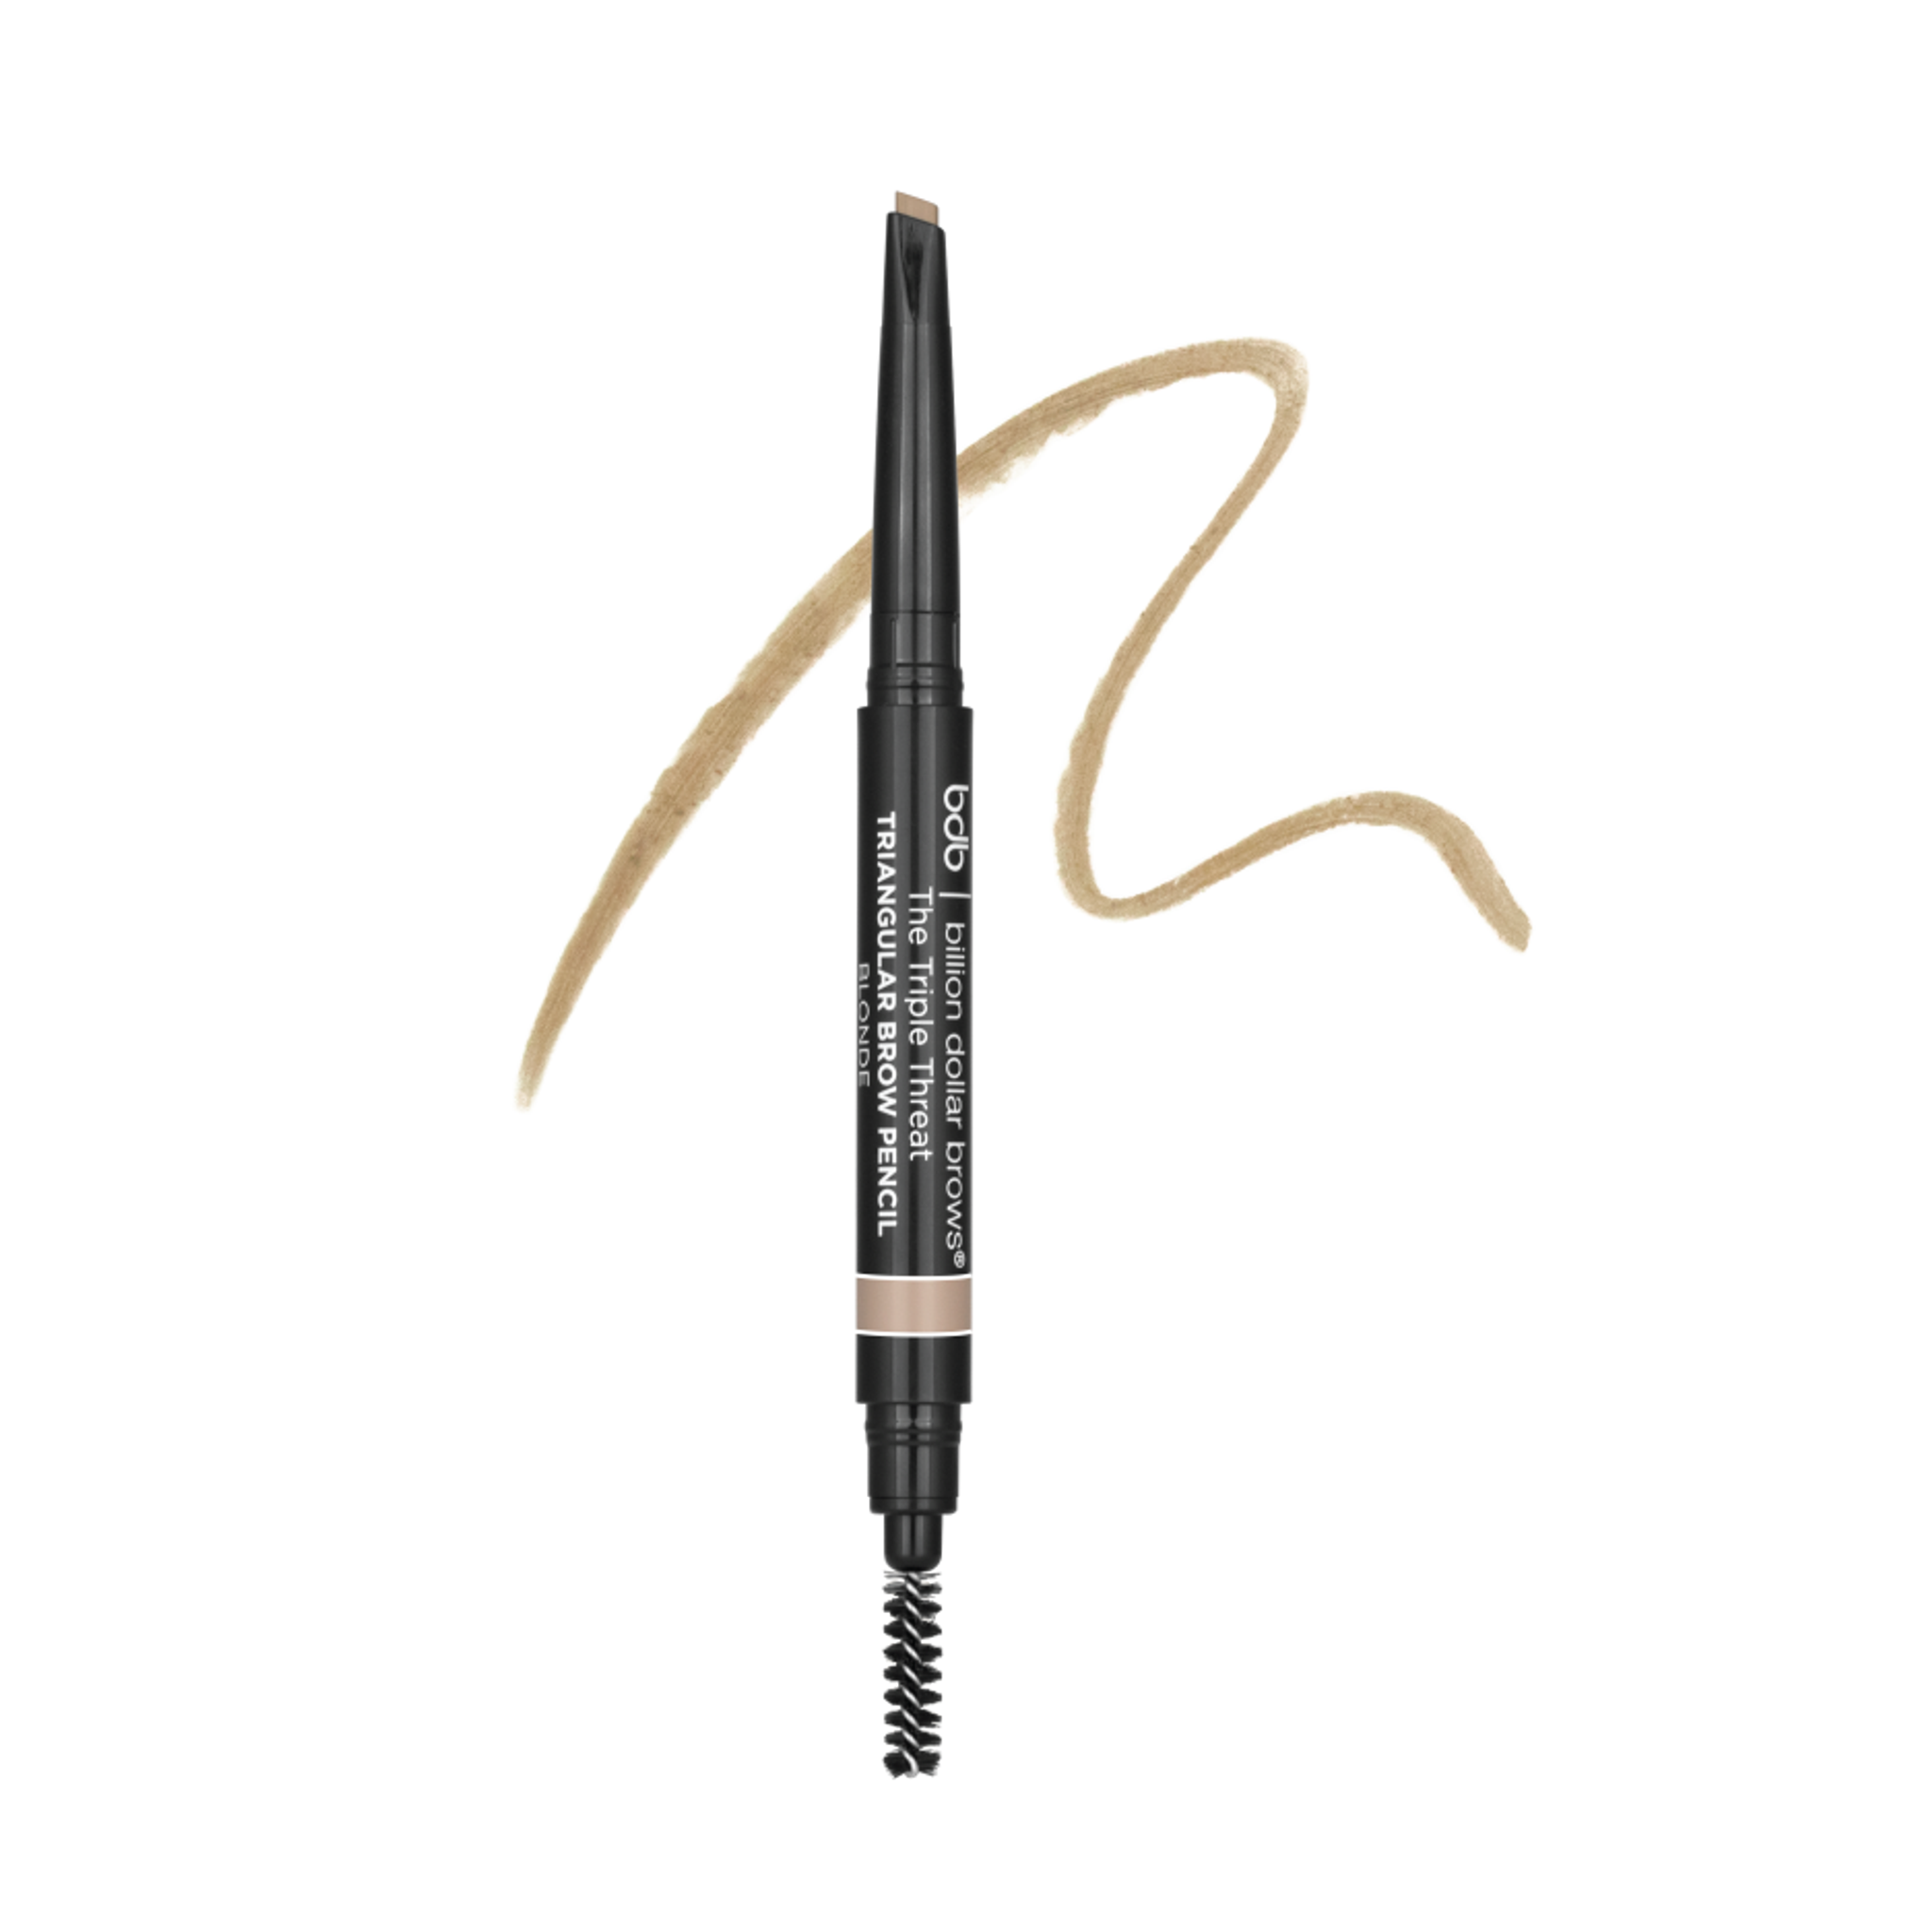 The Triple Threat Triangular Brow Pencil Tester